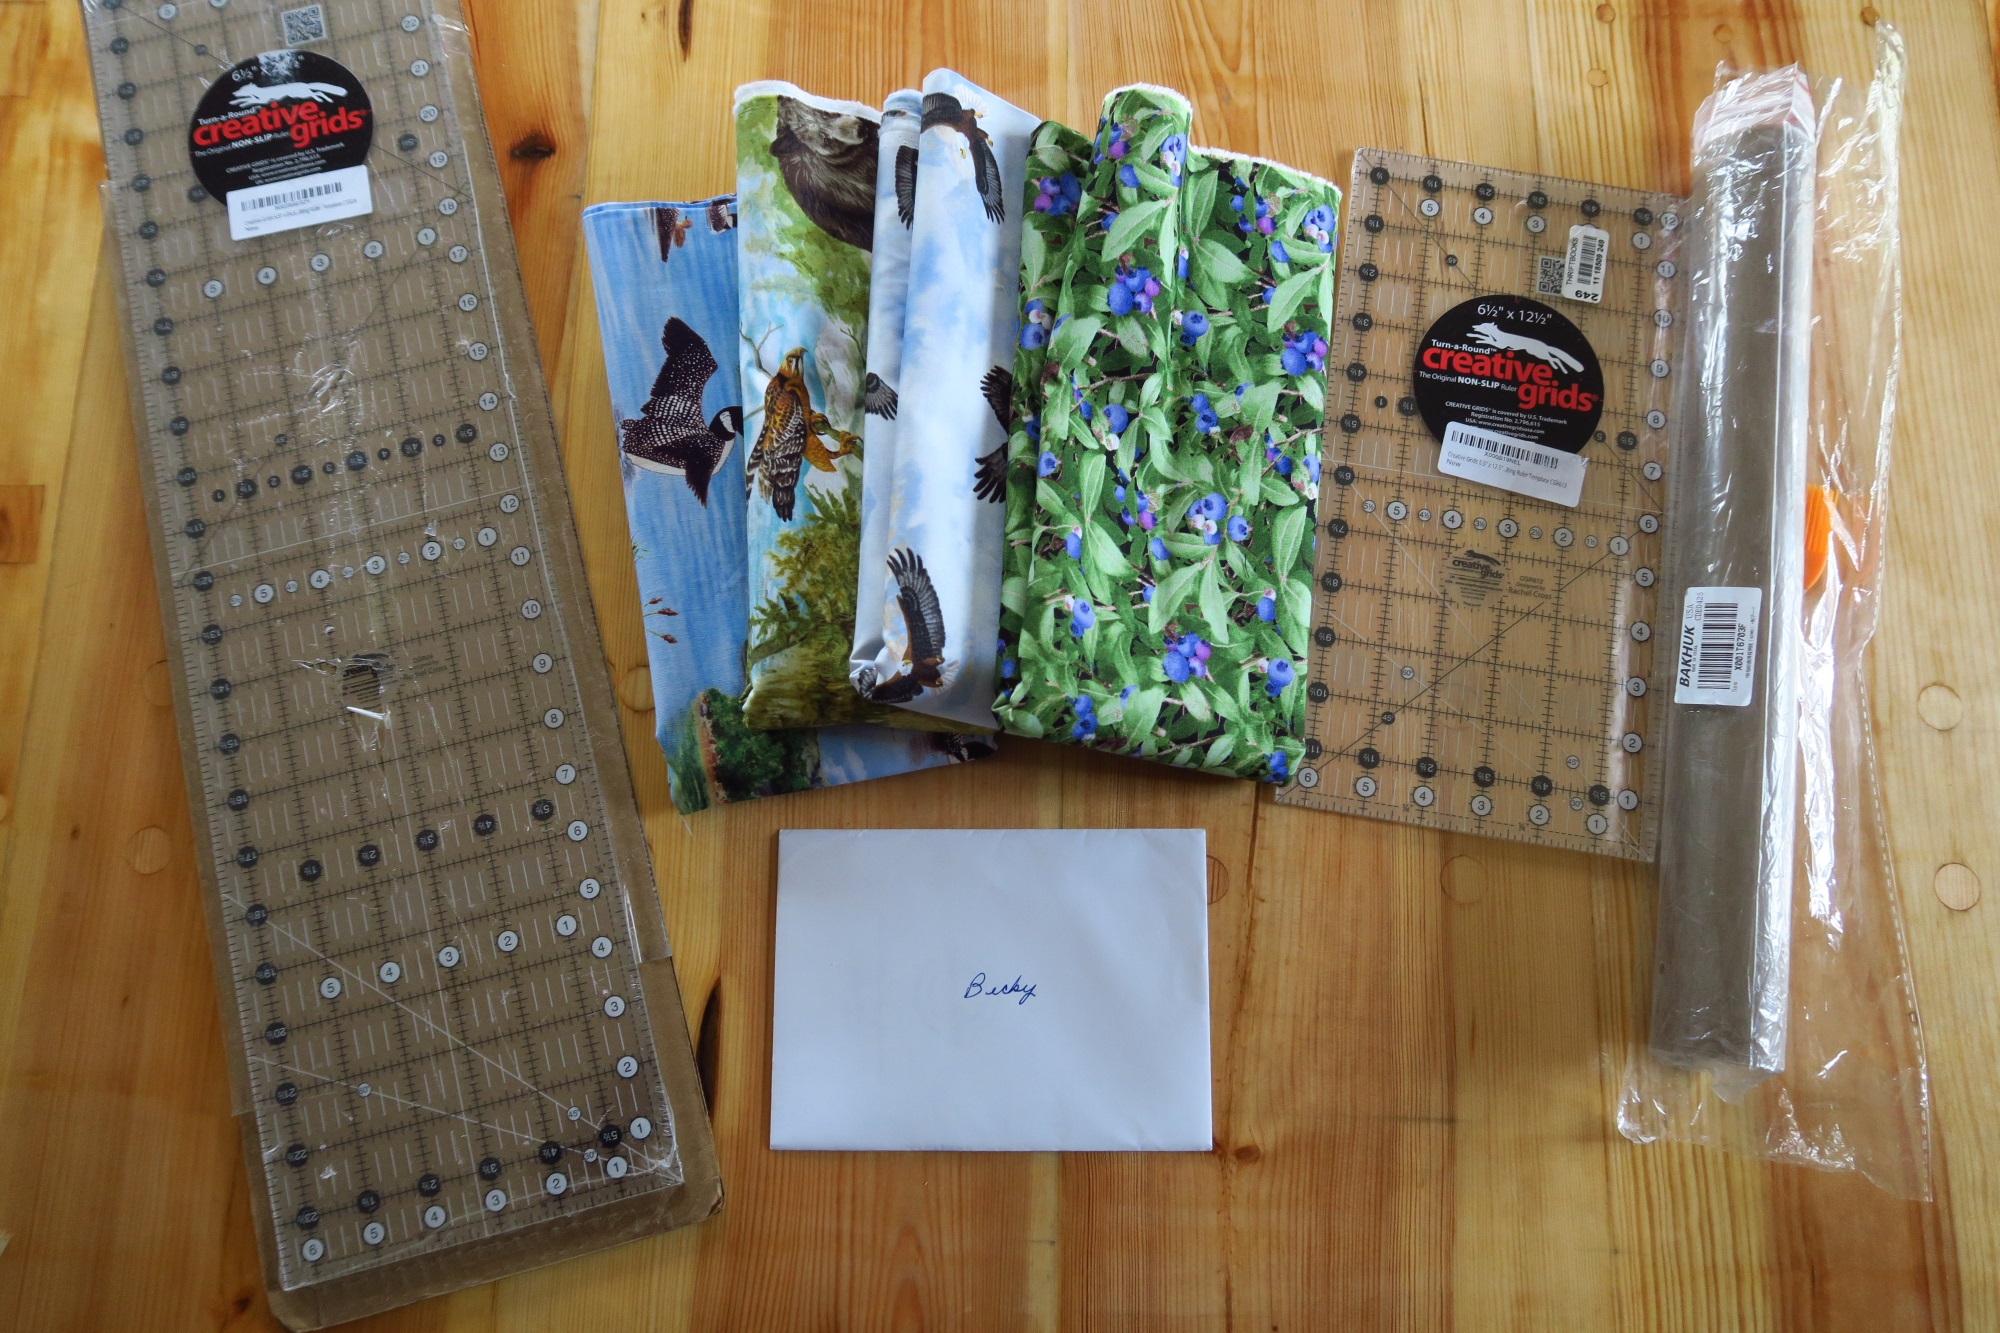 They include rulers, a thank you note from the couple who got the Alaska themed quilt, 4 pieces of fabric and some non stick baking sheets which I'm going to try instead of a Supreme Slider.